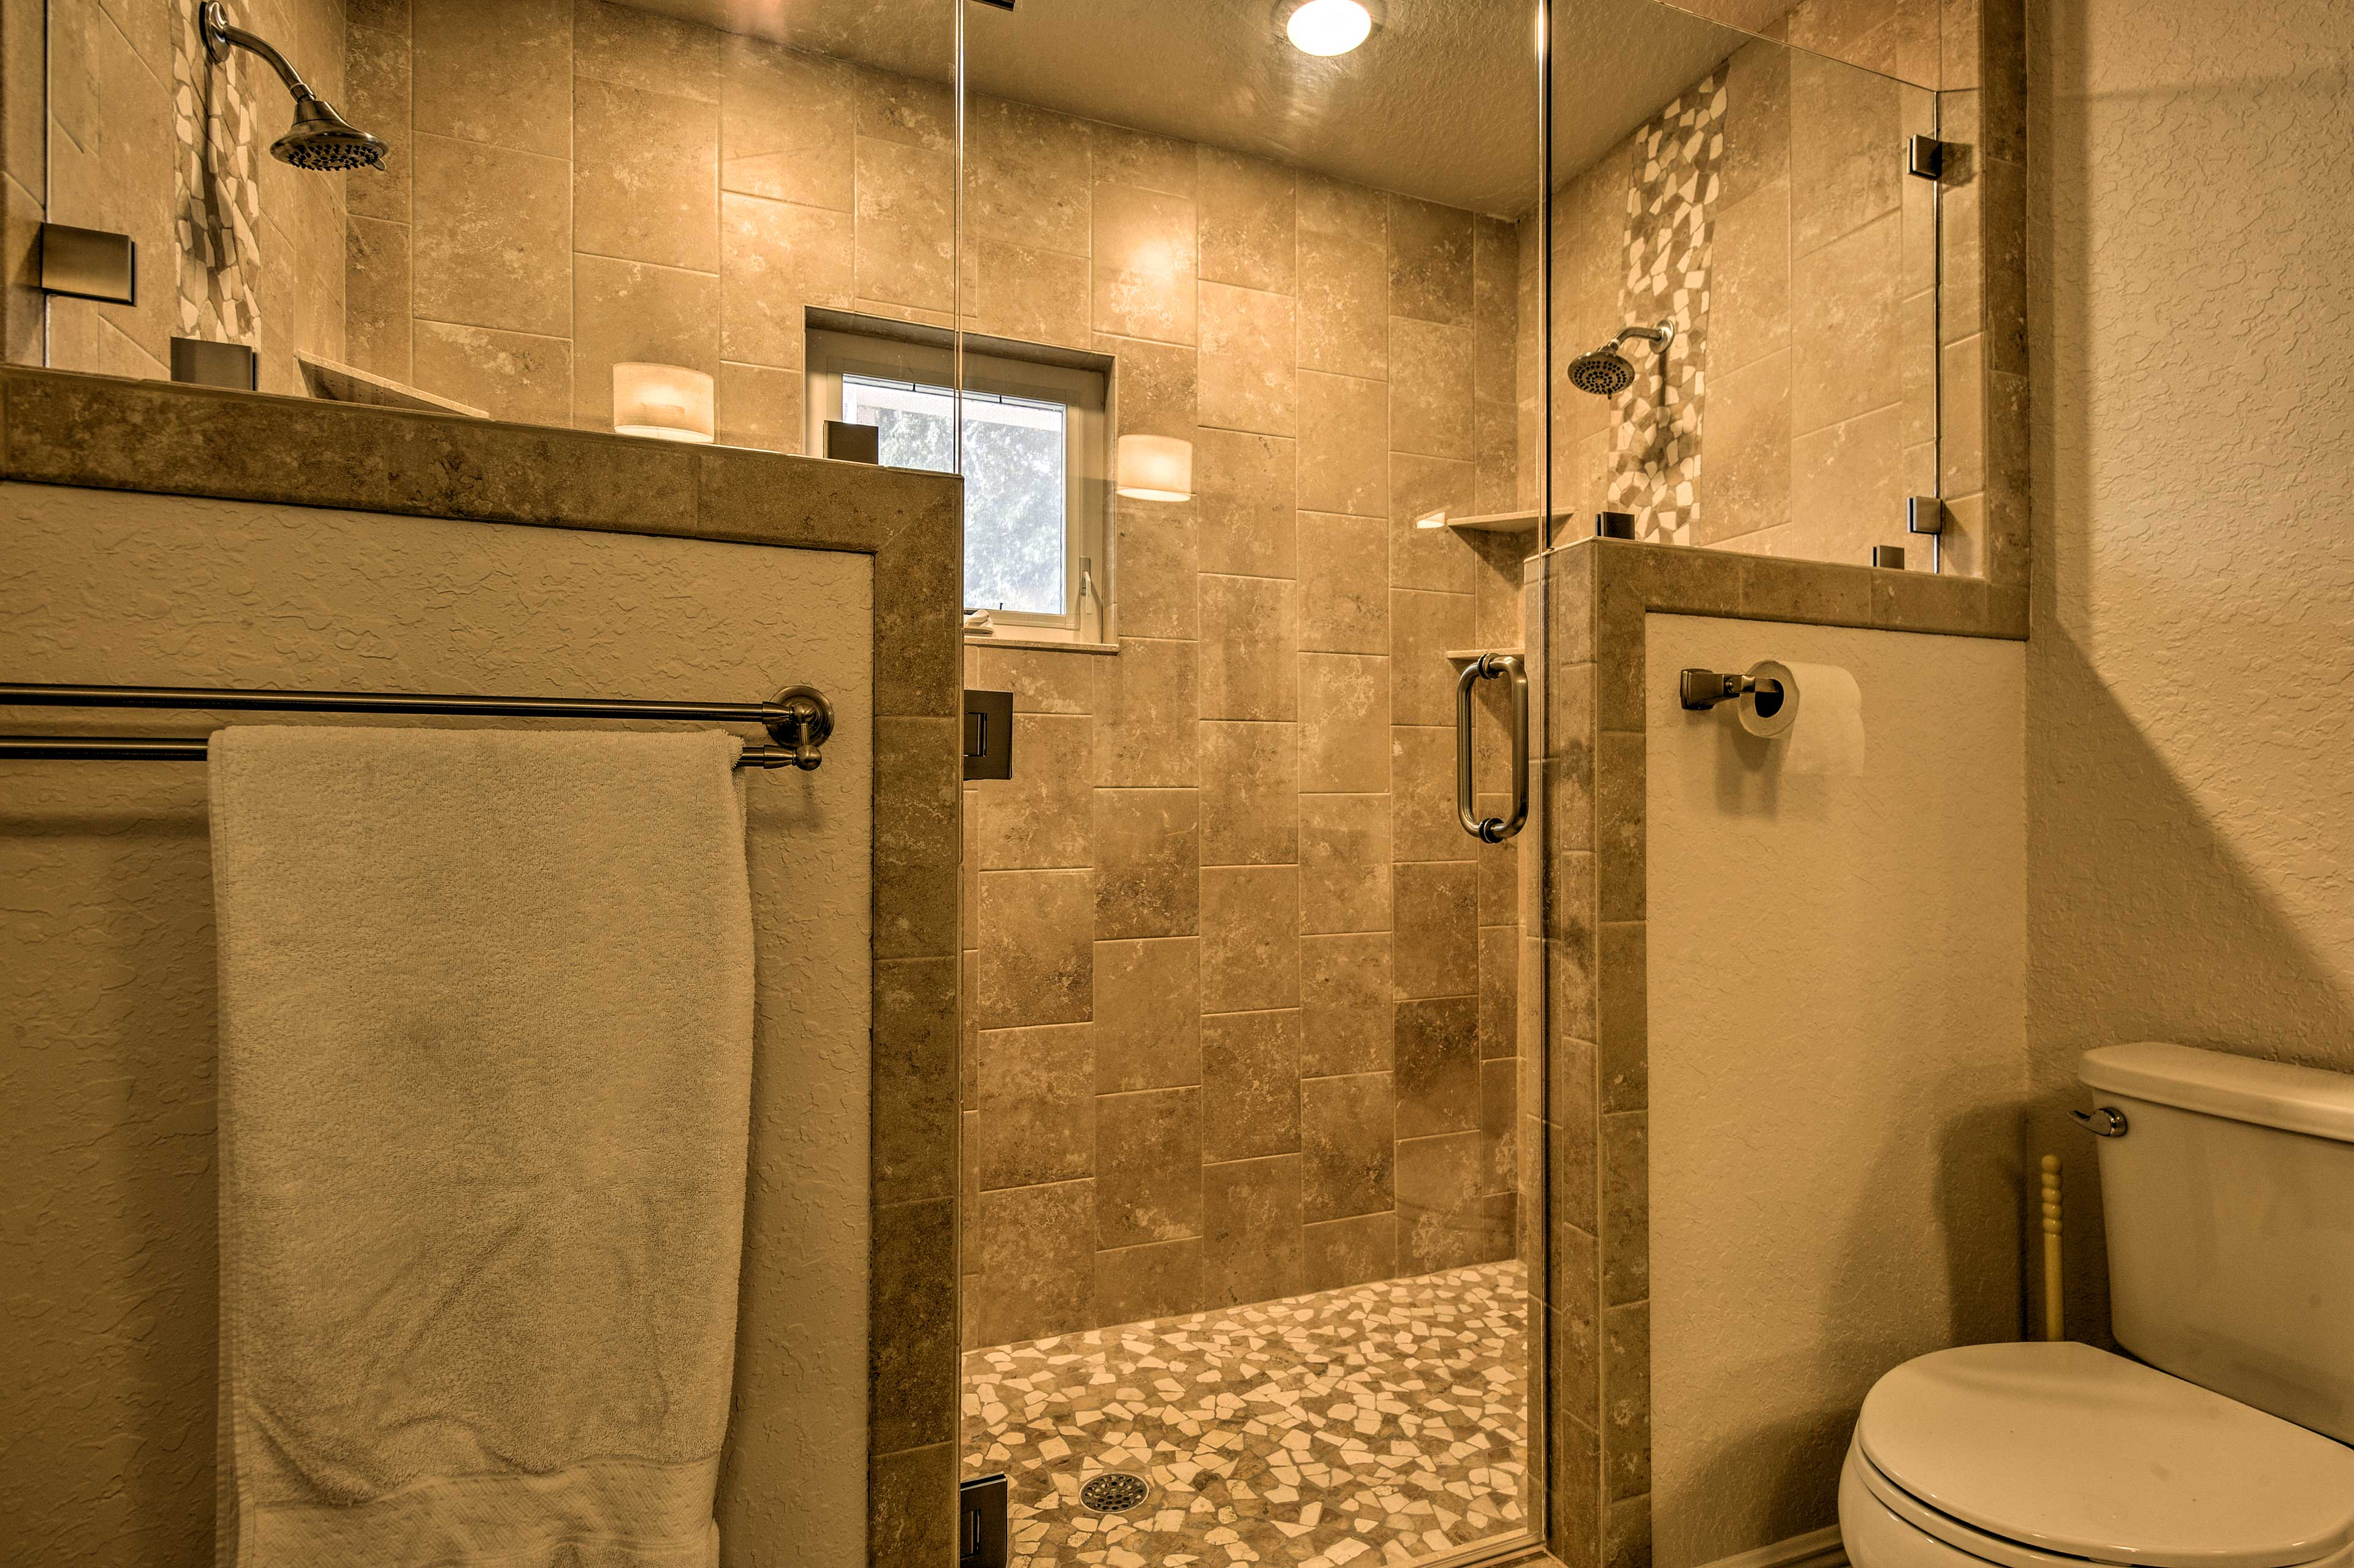 The luxury walk-in shower features dual shower heads!